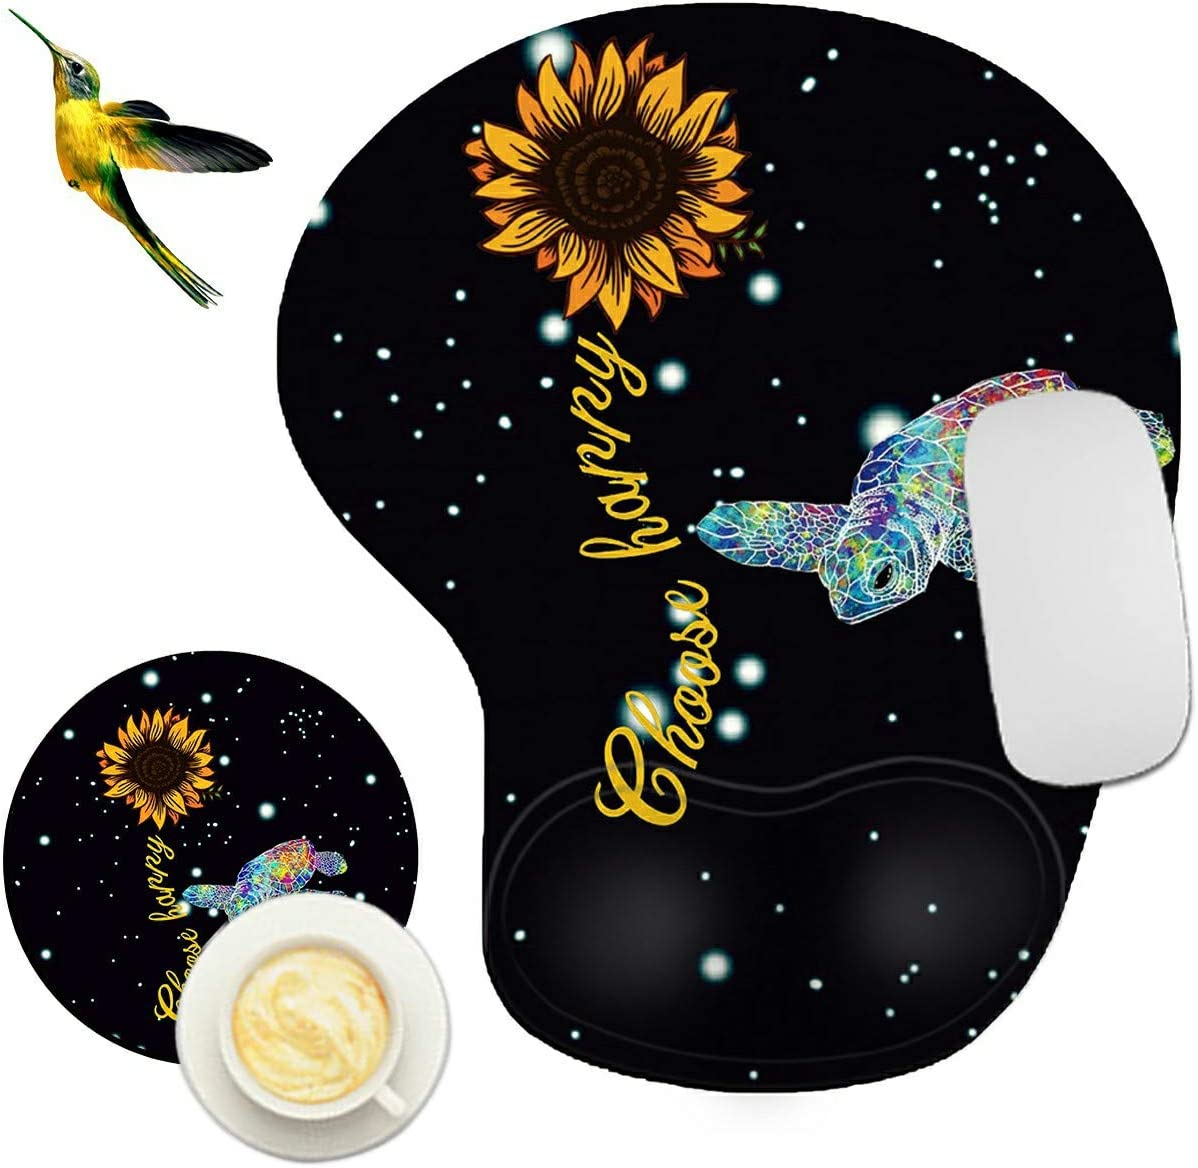 Mouse Pad with Wrist Support Rest,Rossy Sunflowers with Sea Turtle Design Ergonomic Gaming Mousepad Non-Slip Rubber Base Wrist Cushion for Office Computer Laptop + Coasters and Cute Stickers